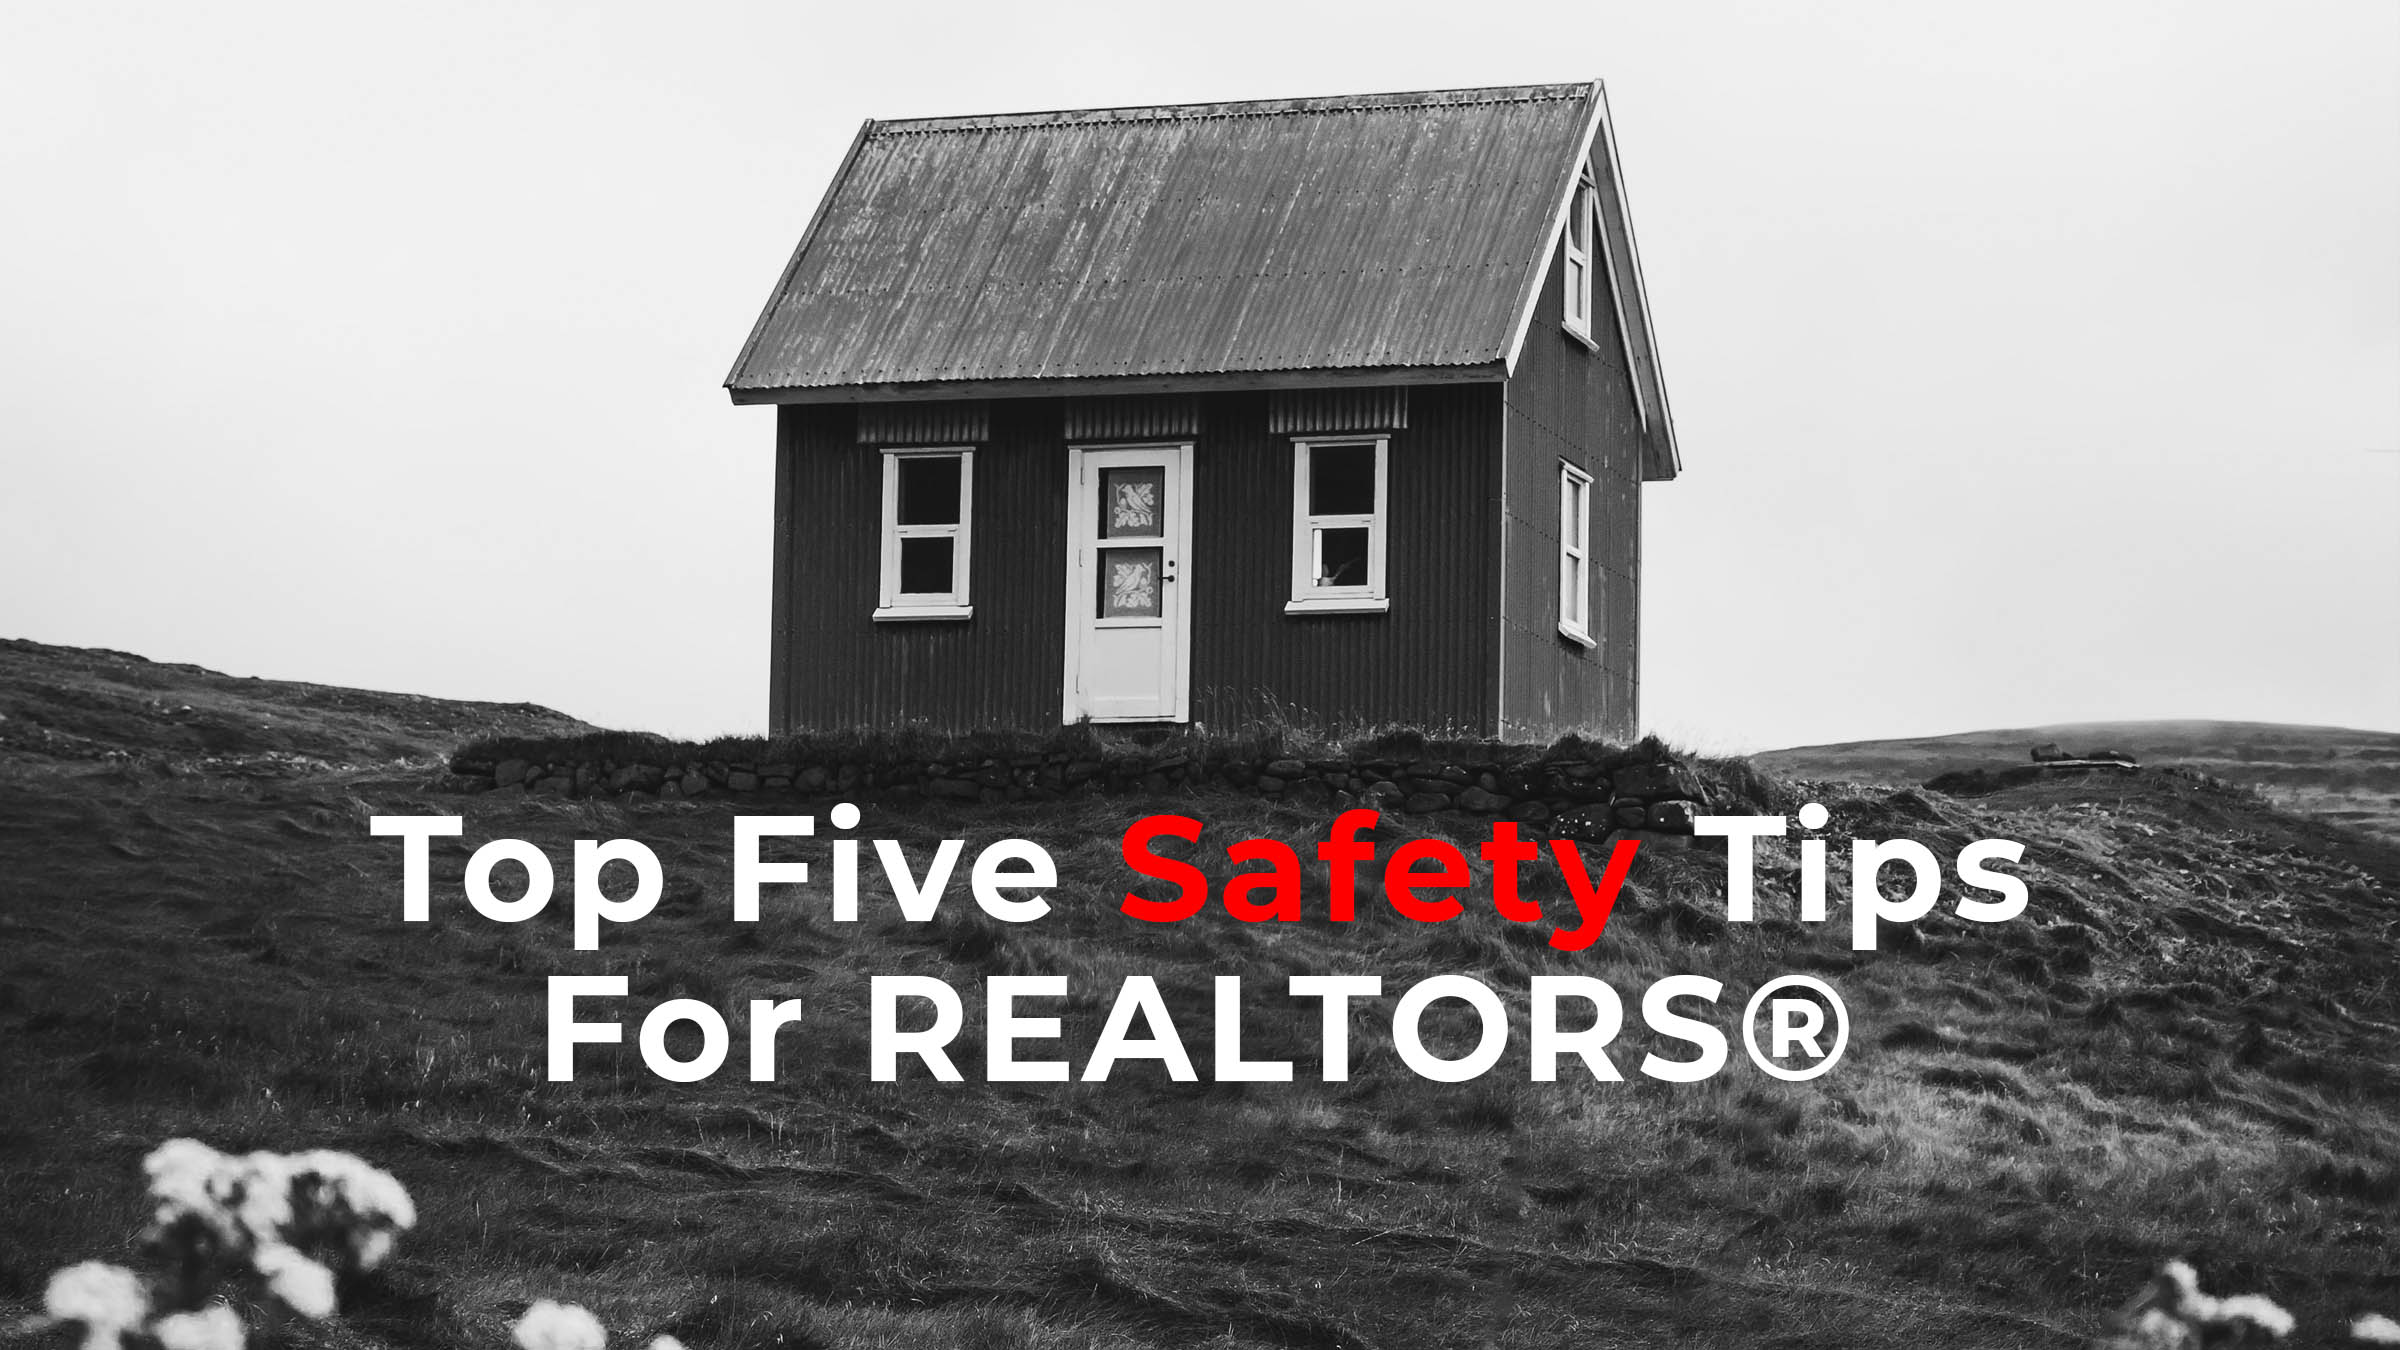 Top Five Safety Tips For REALTORS® Serving Buyers And Sellers